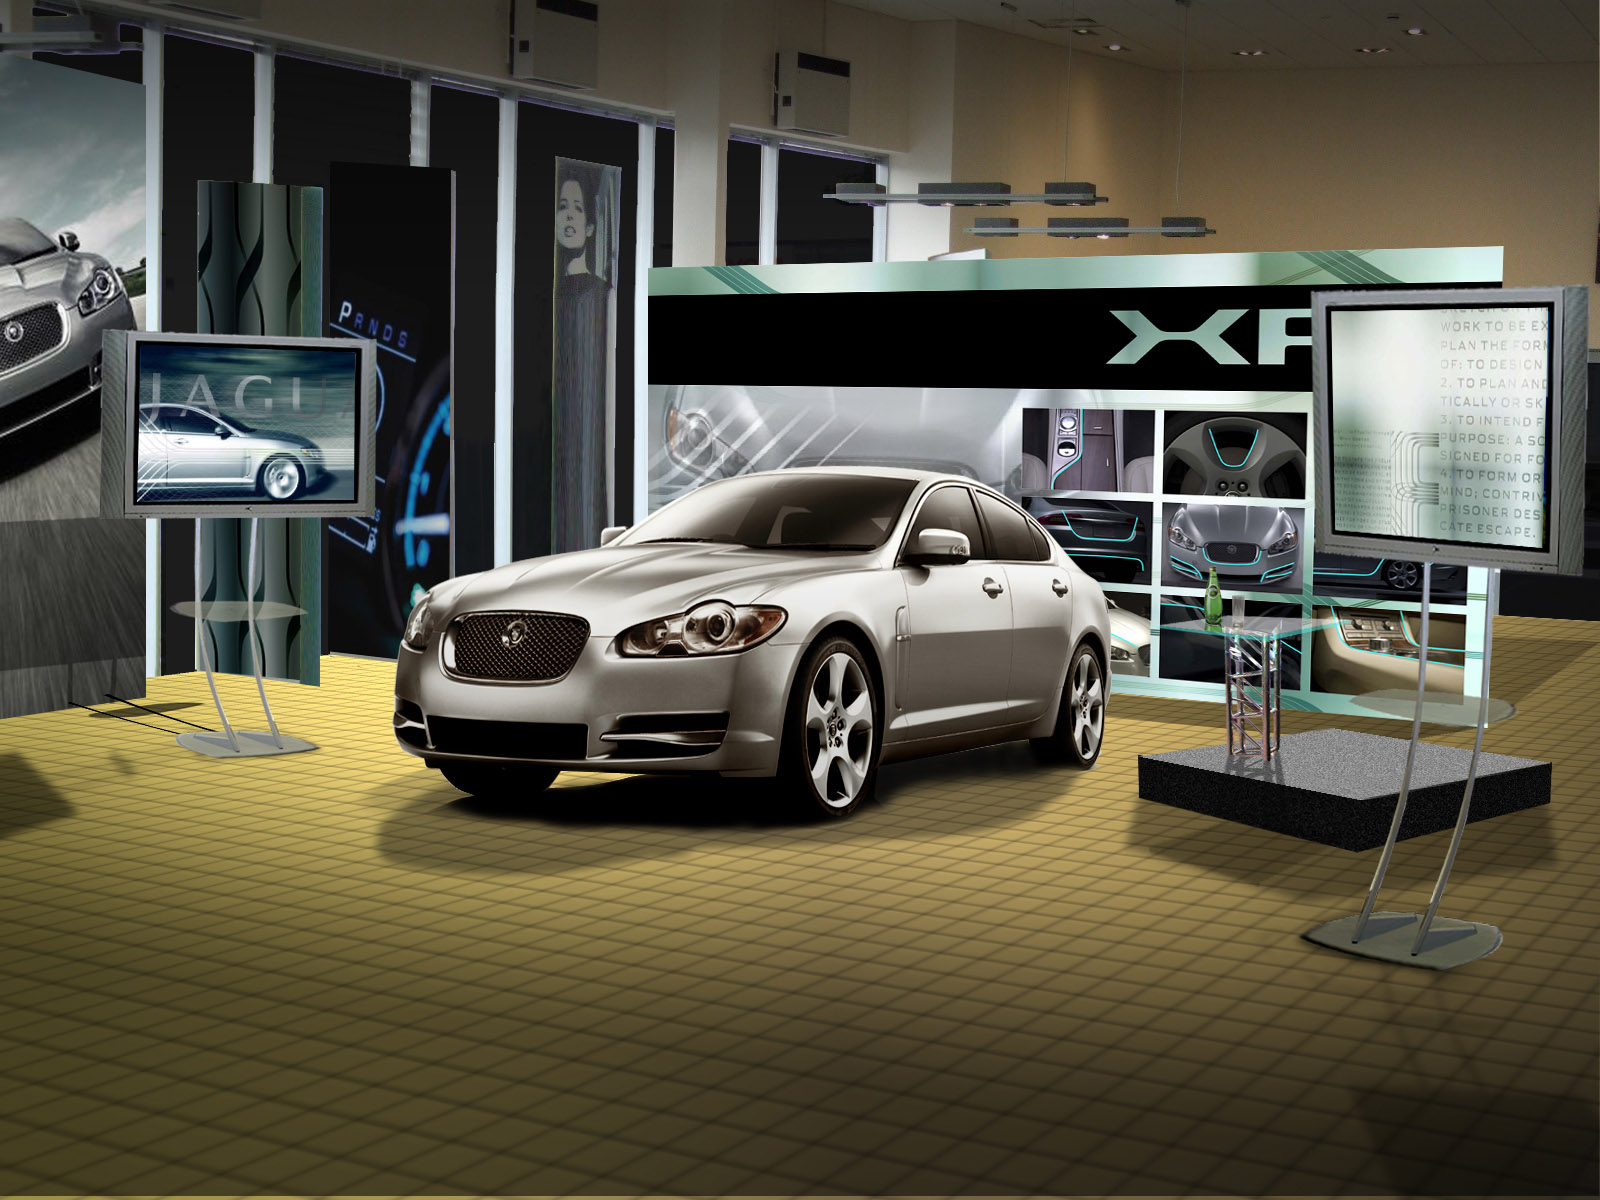 Jaguar XF Visual Lit Full v1